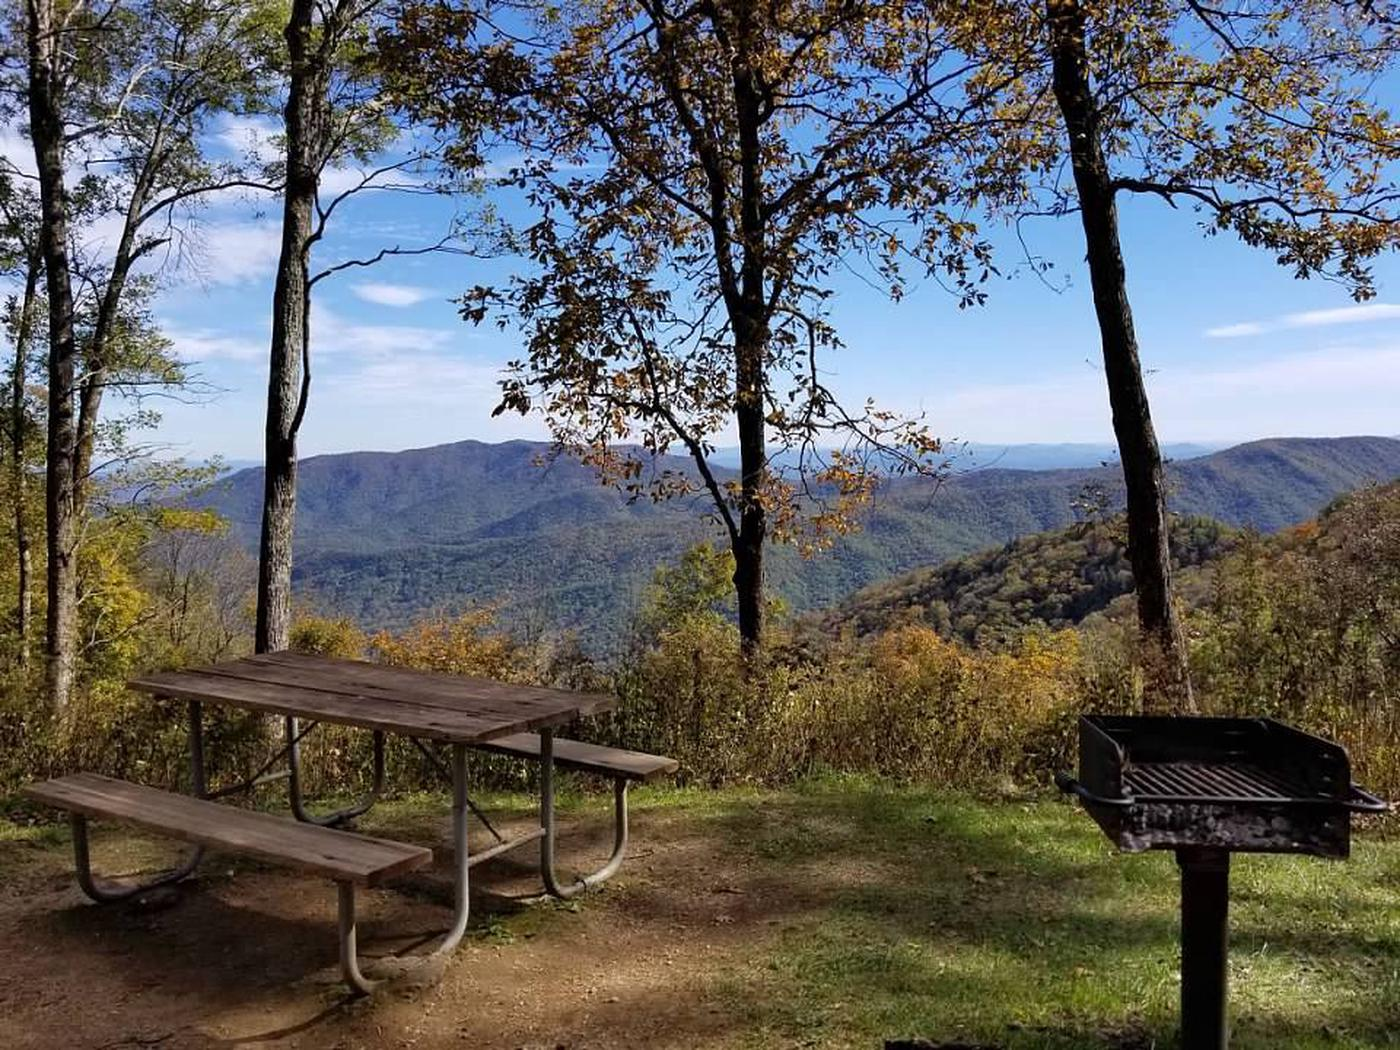 Incredible view at Crabtree Falls Picnic Area.The Crabtree Falls Picnic Area, just up from the campground, offers incredible views.